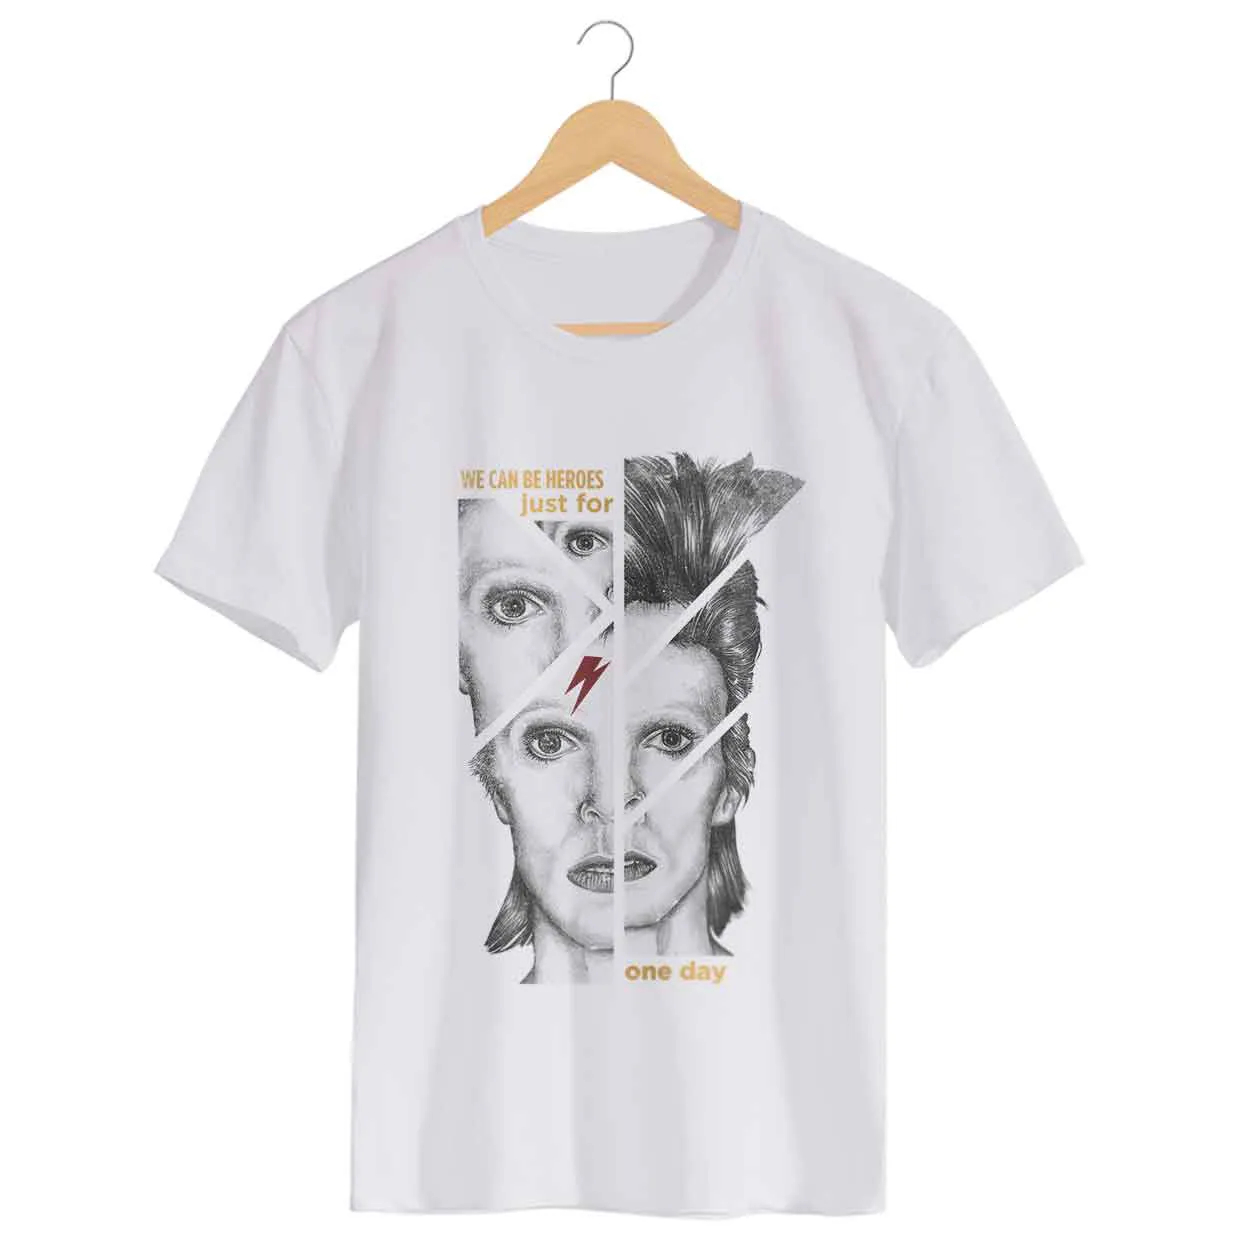 Camiseta - We Can Be Heroes - David Bowie